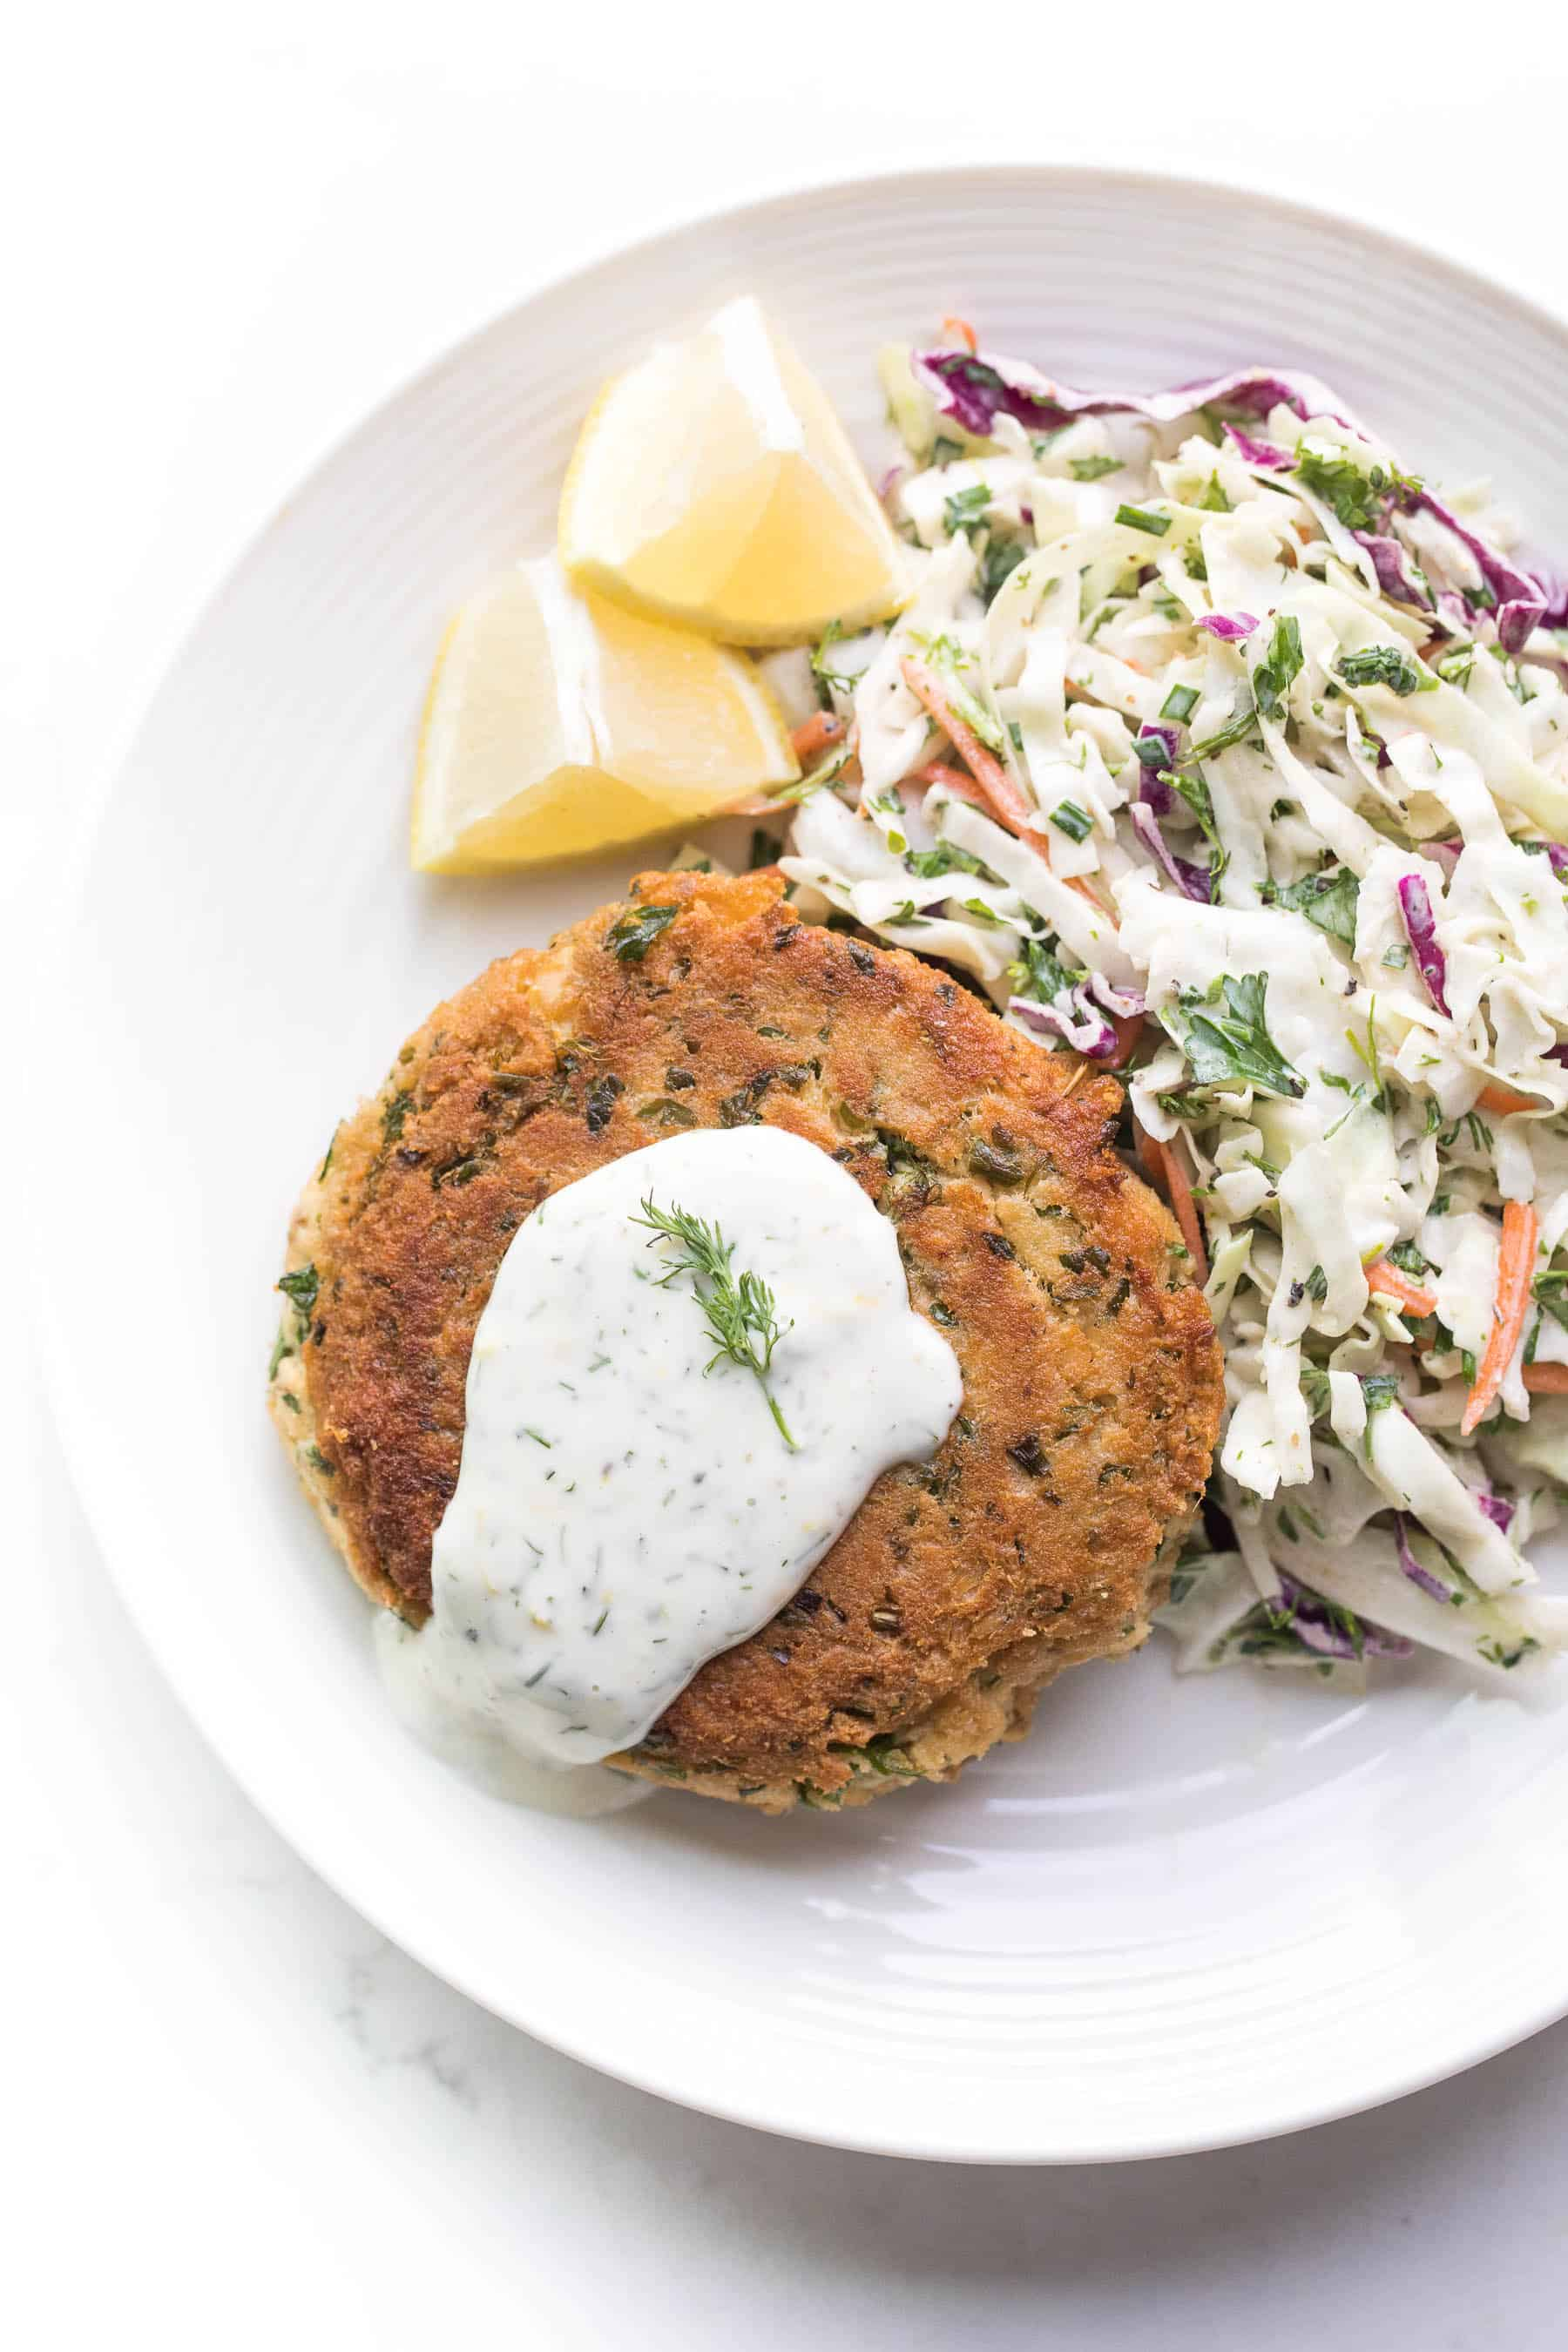 Salmon cake on a white plate with coleslaw and lemon wedges